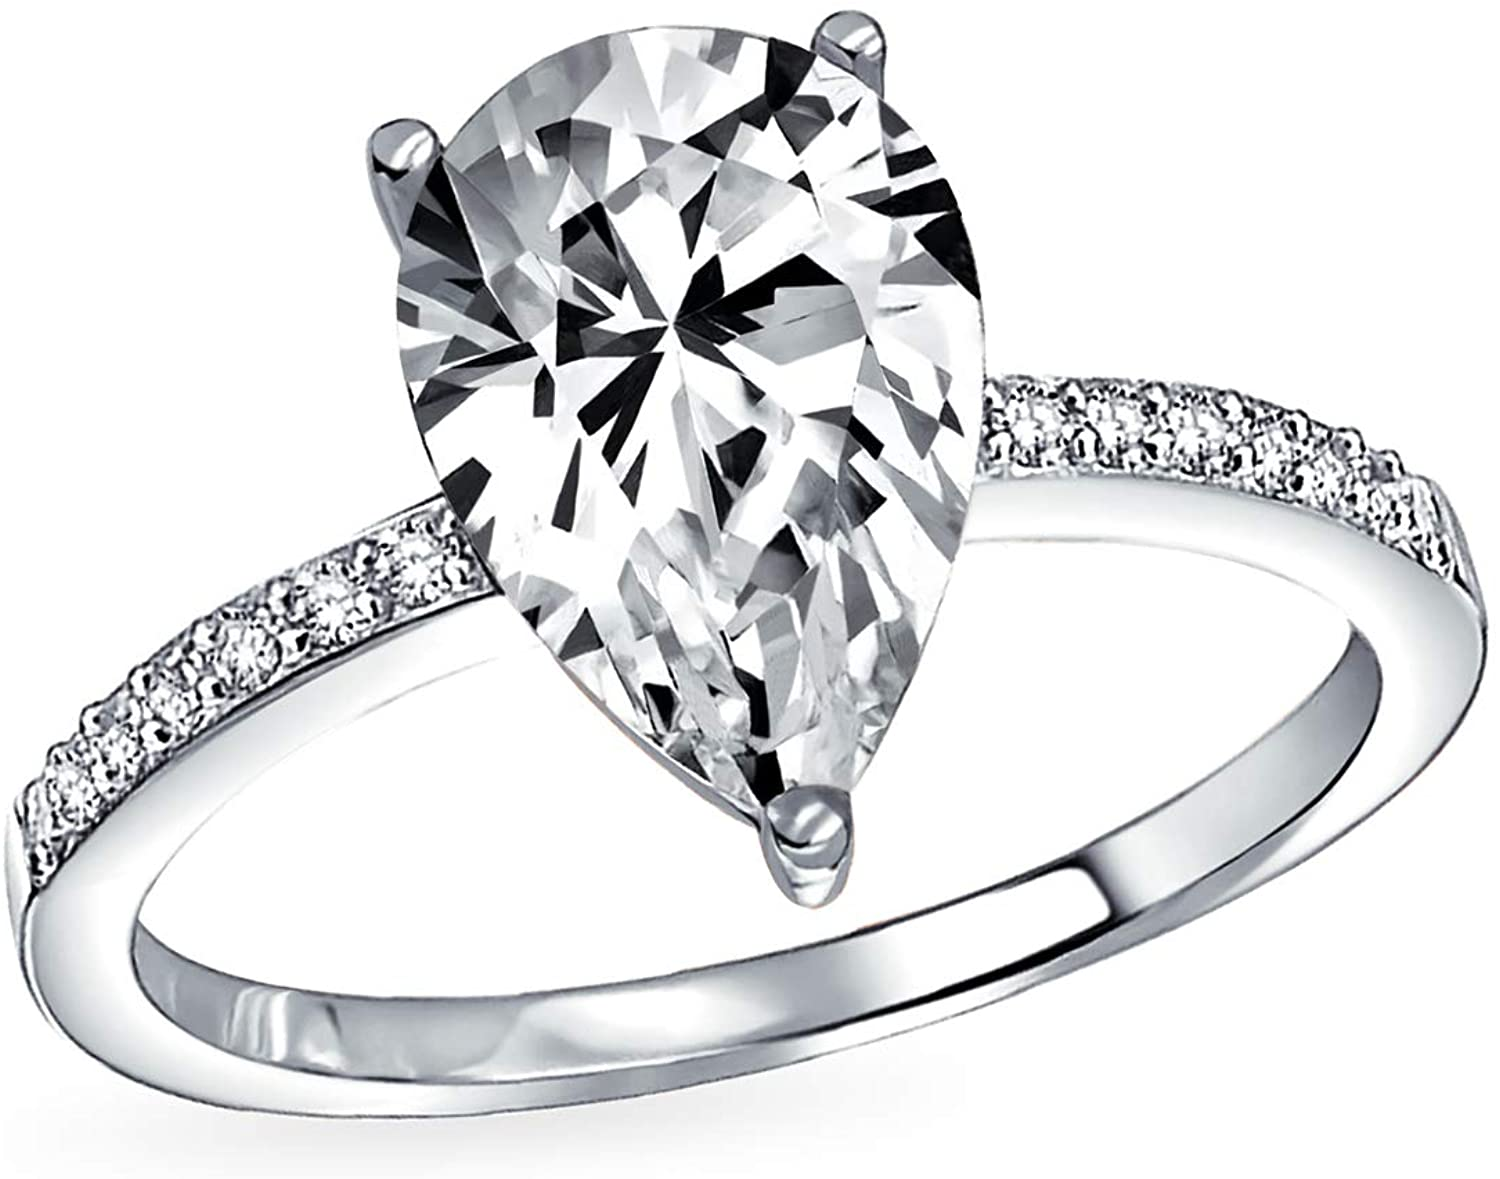 2.5CT Teardrop Pear Shape Solitaire AAA CZ Engagement Ring 1MM Band Cubic Zirconia Rose Gold Plated 925 Sterling Silver